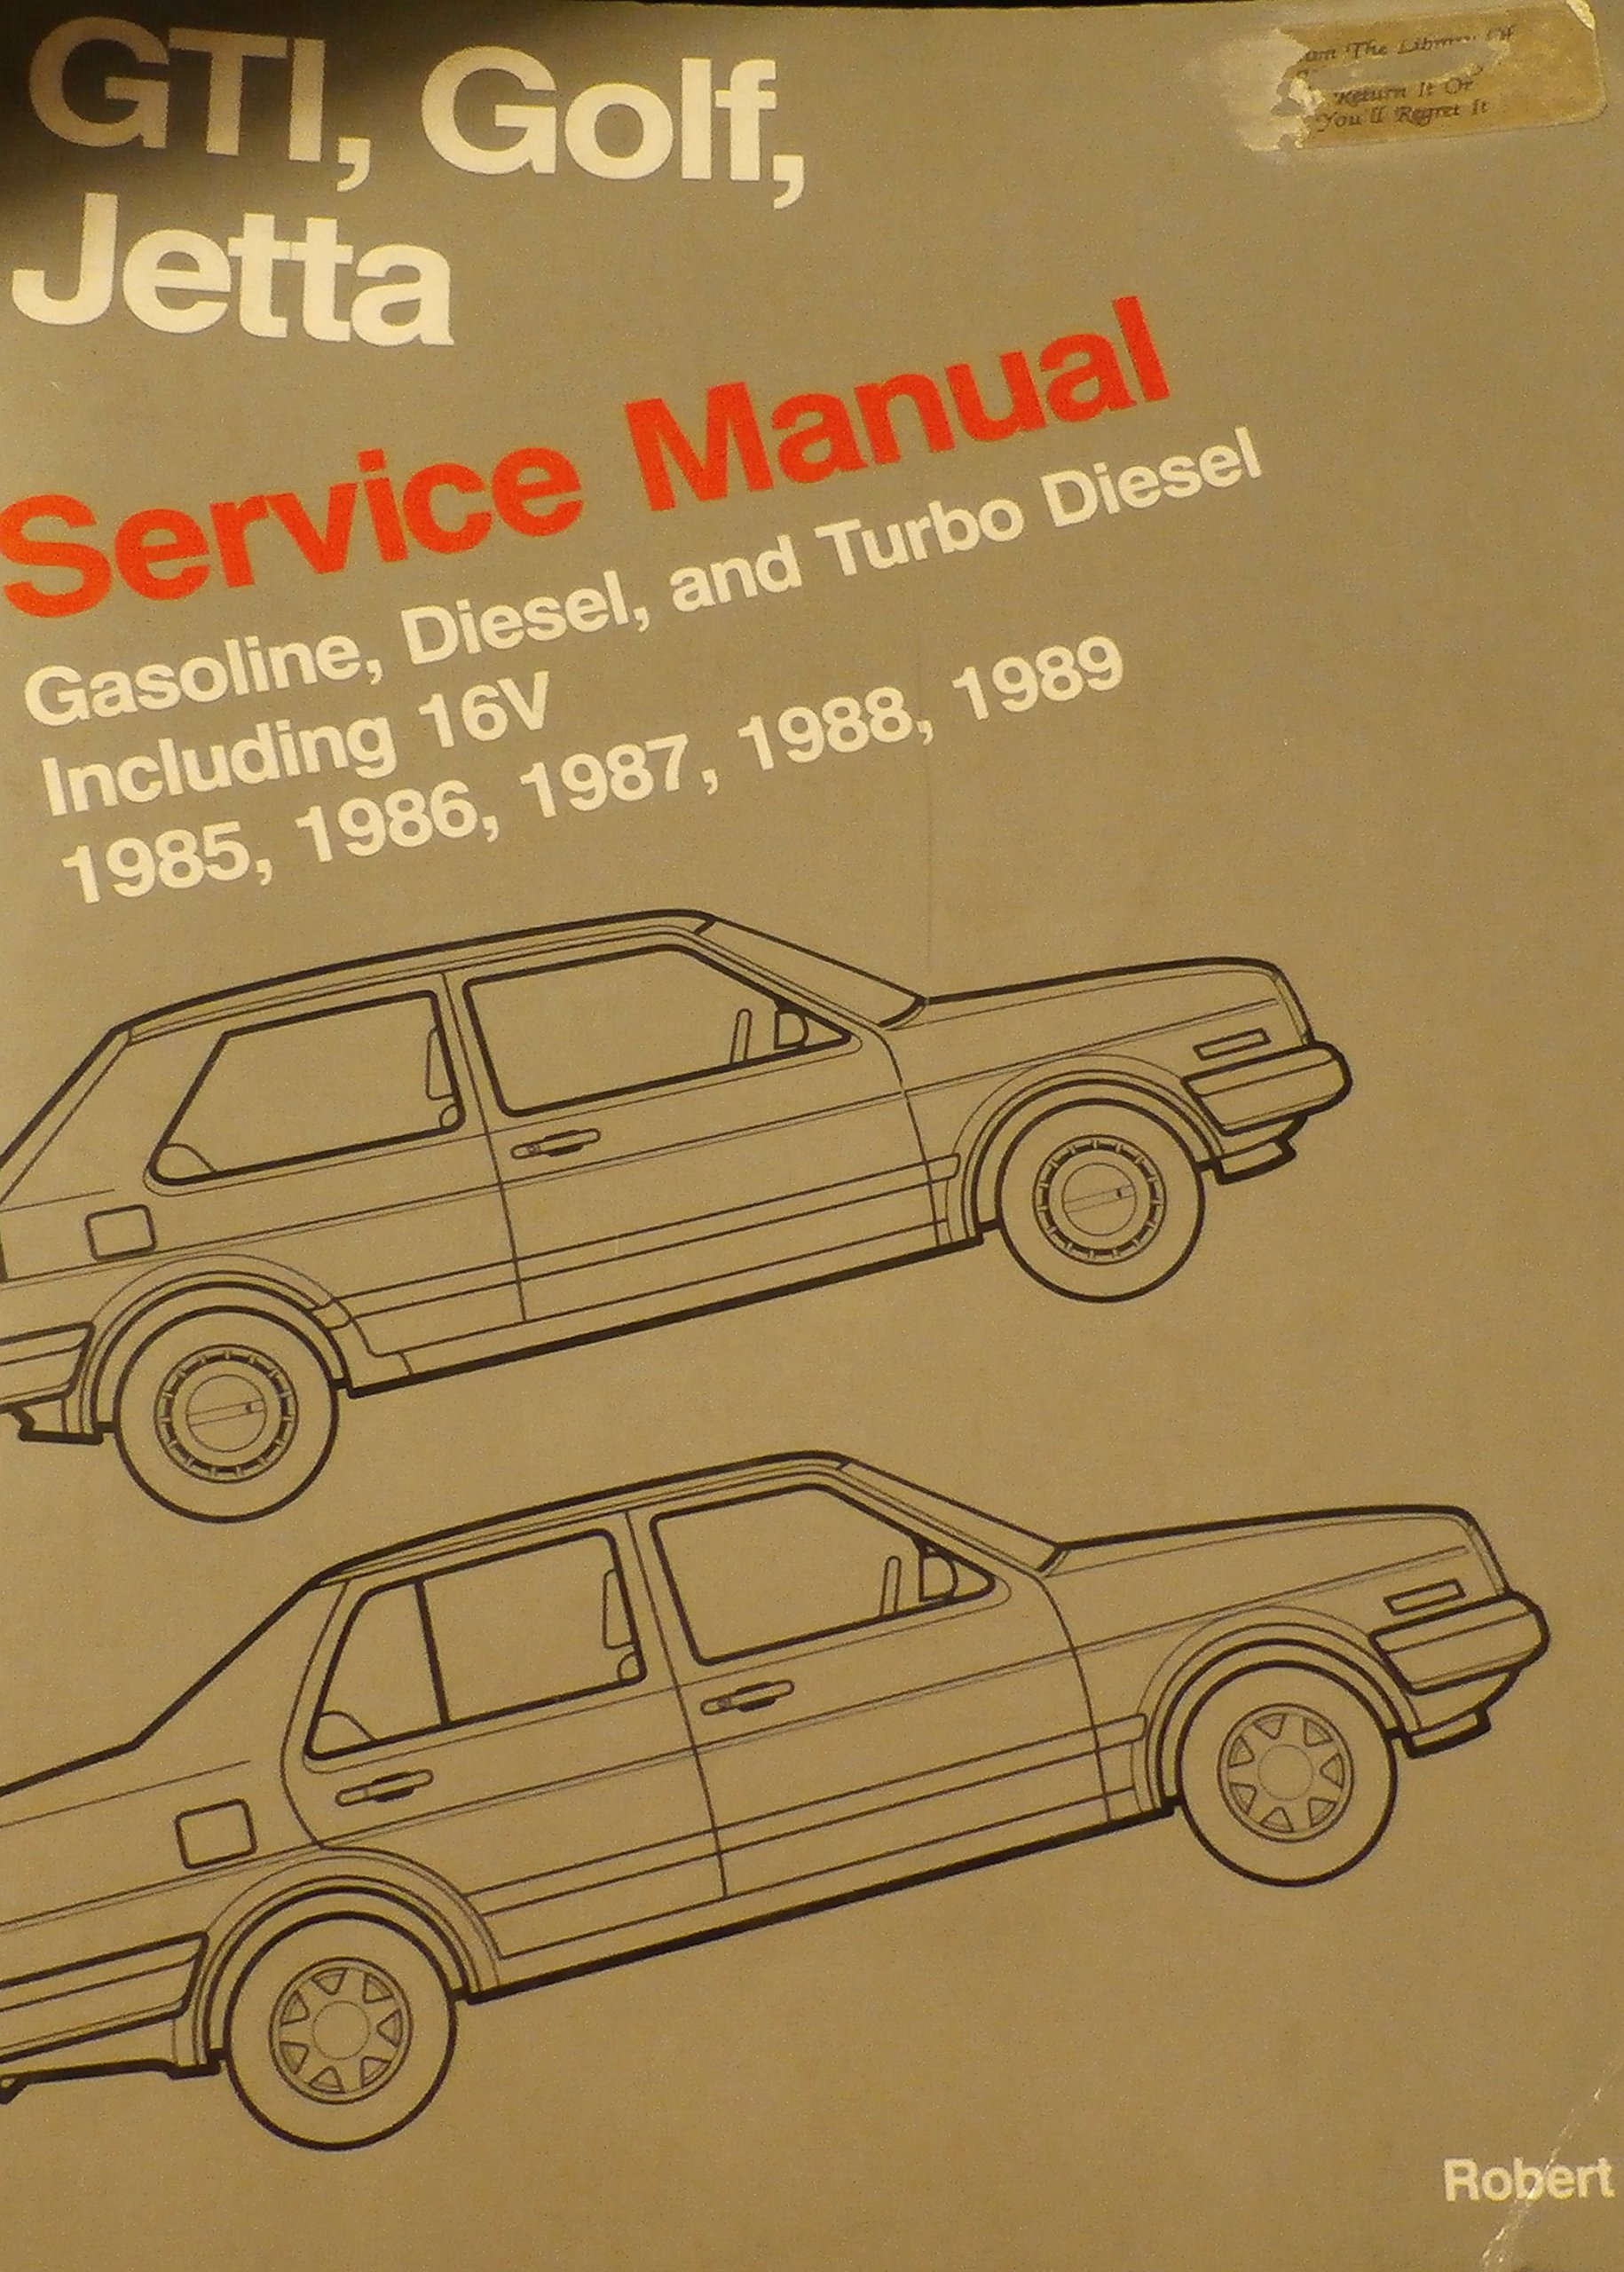 Volkswagen GTI, Golf, and Jetta service manual 1985, 1986, 1987, 1988, 1989:  Gasoline, diesel, and turbo diesel including 16V (Volkswagen service manuals):  ...